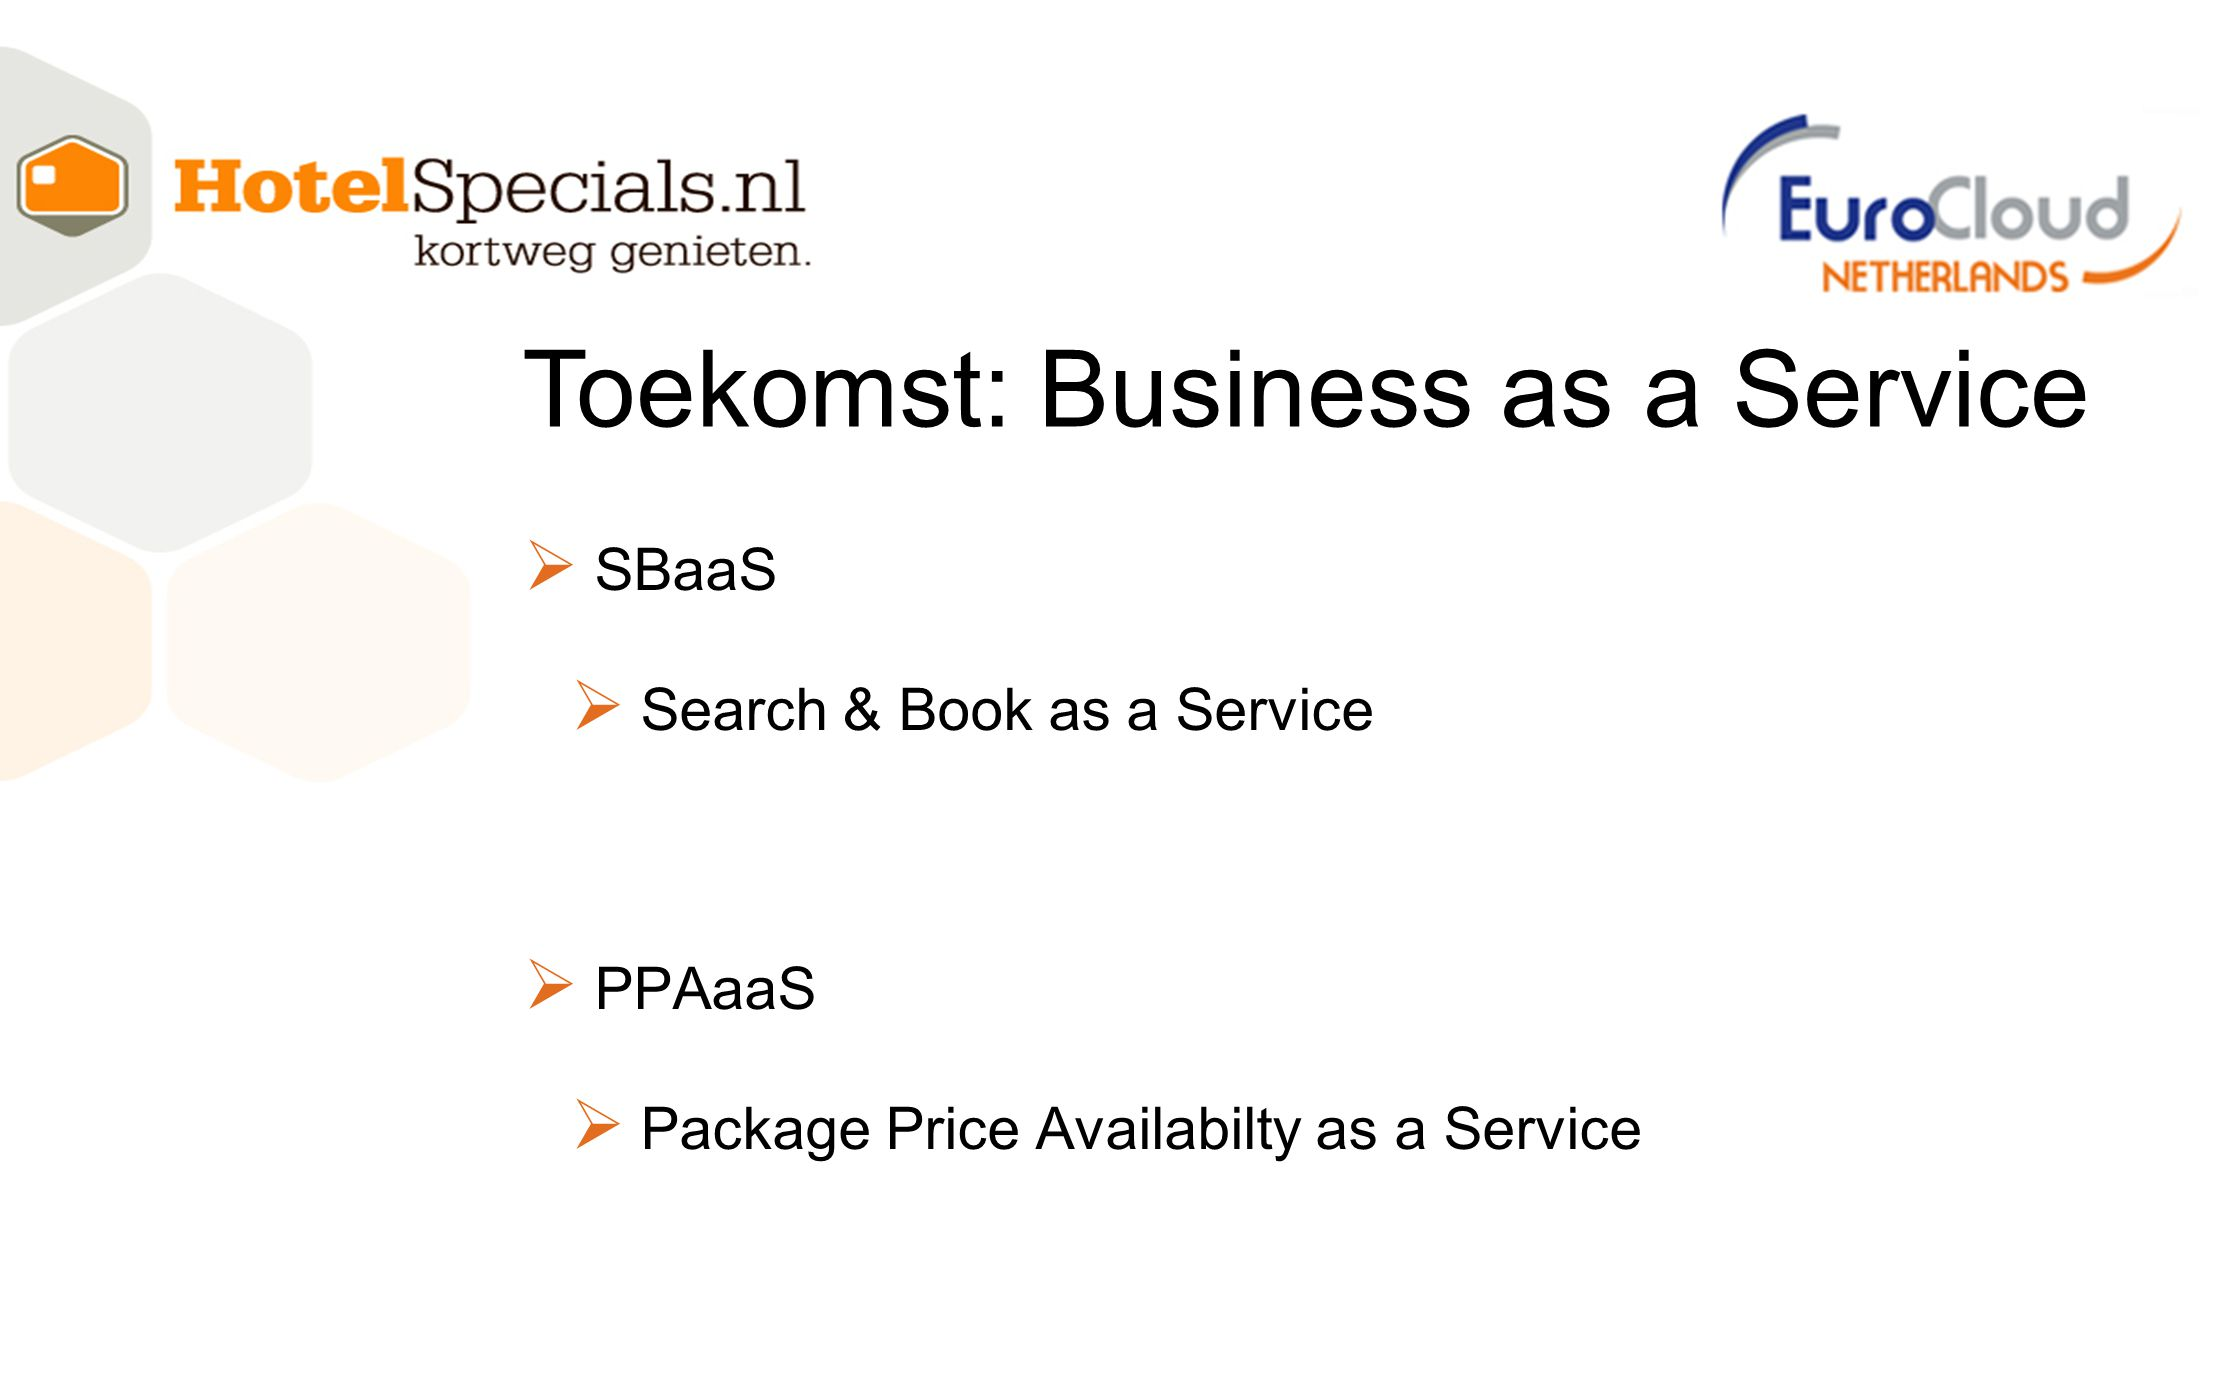 Toekomst: Business as a Service